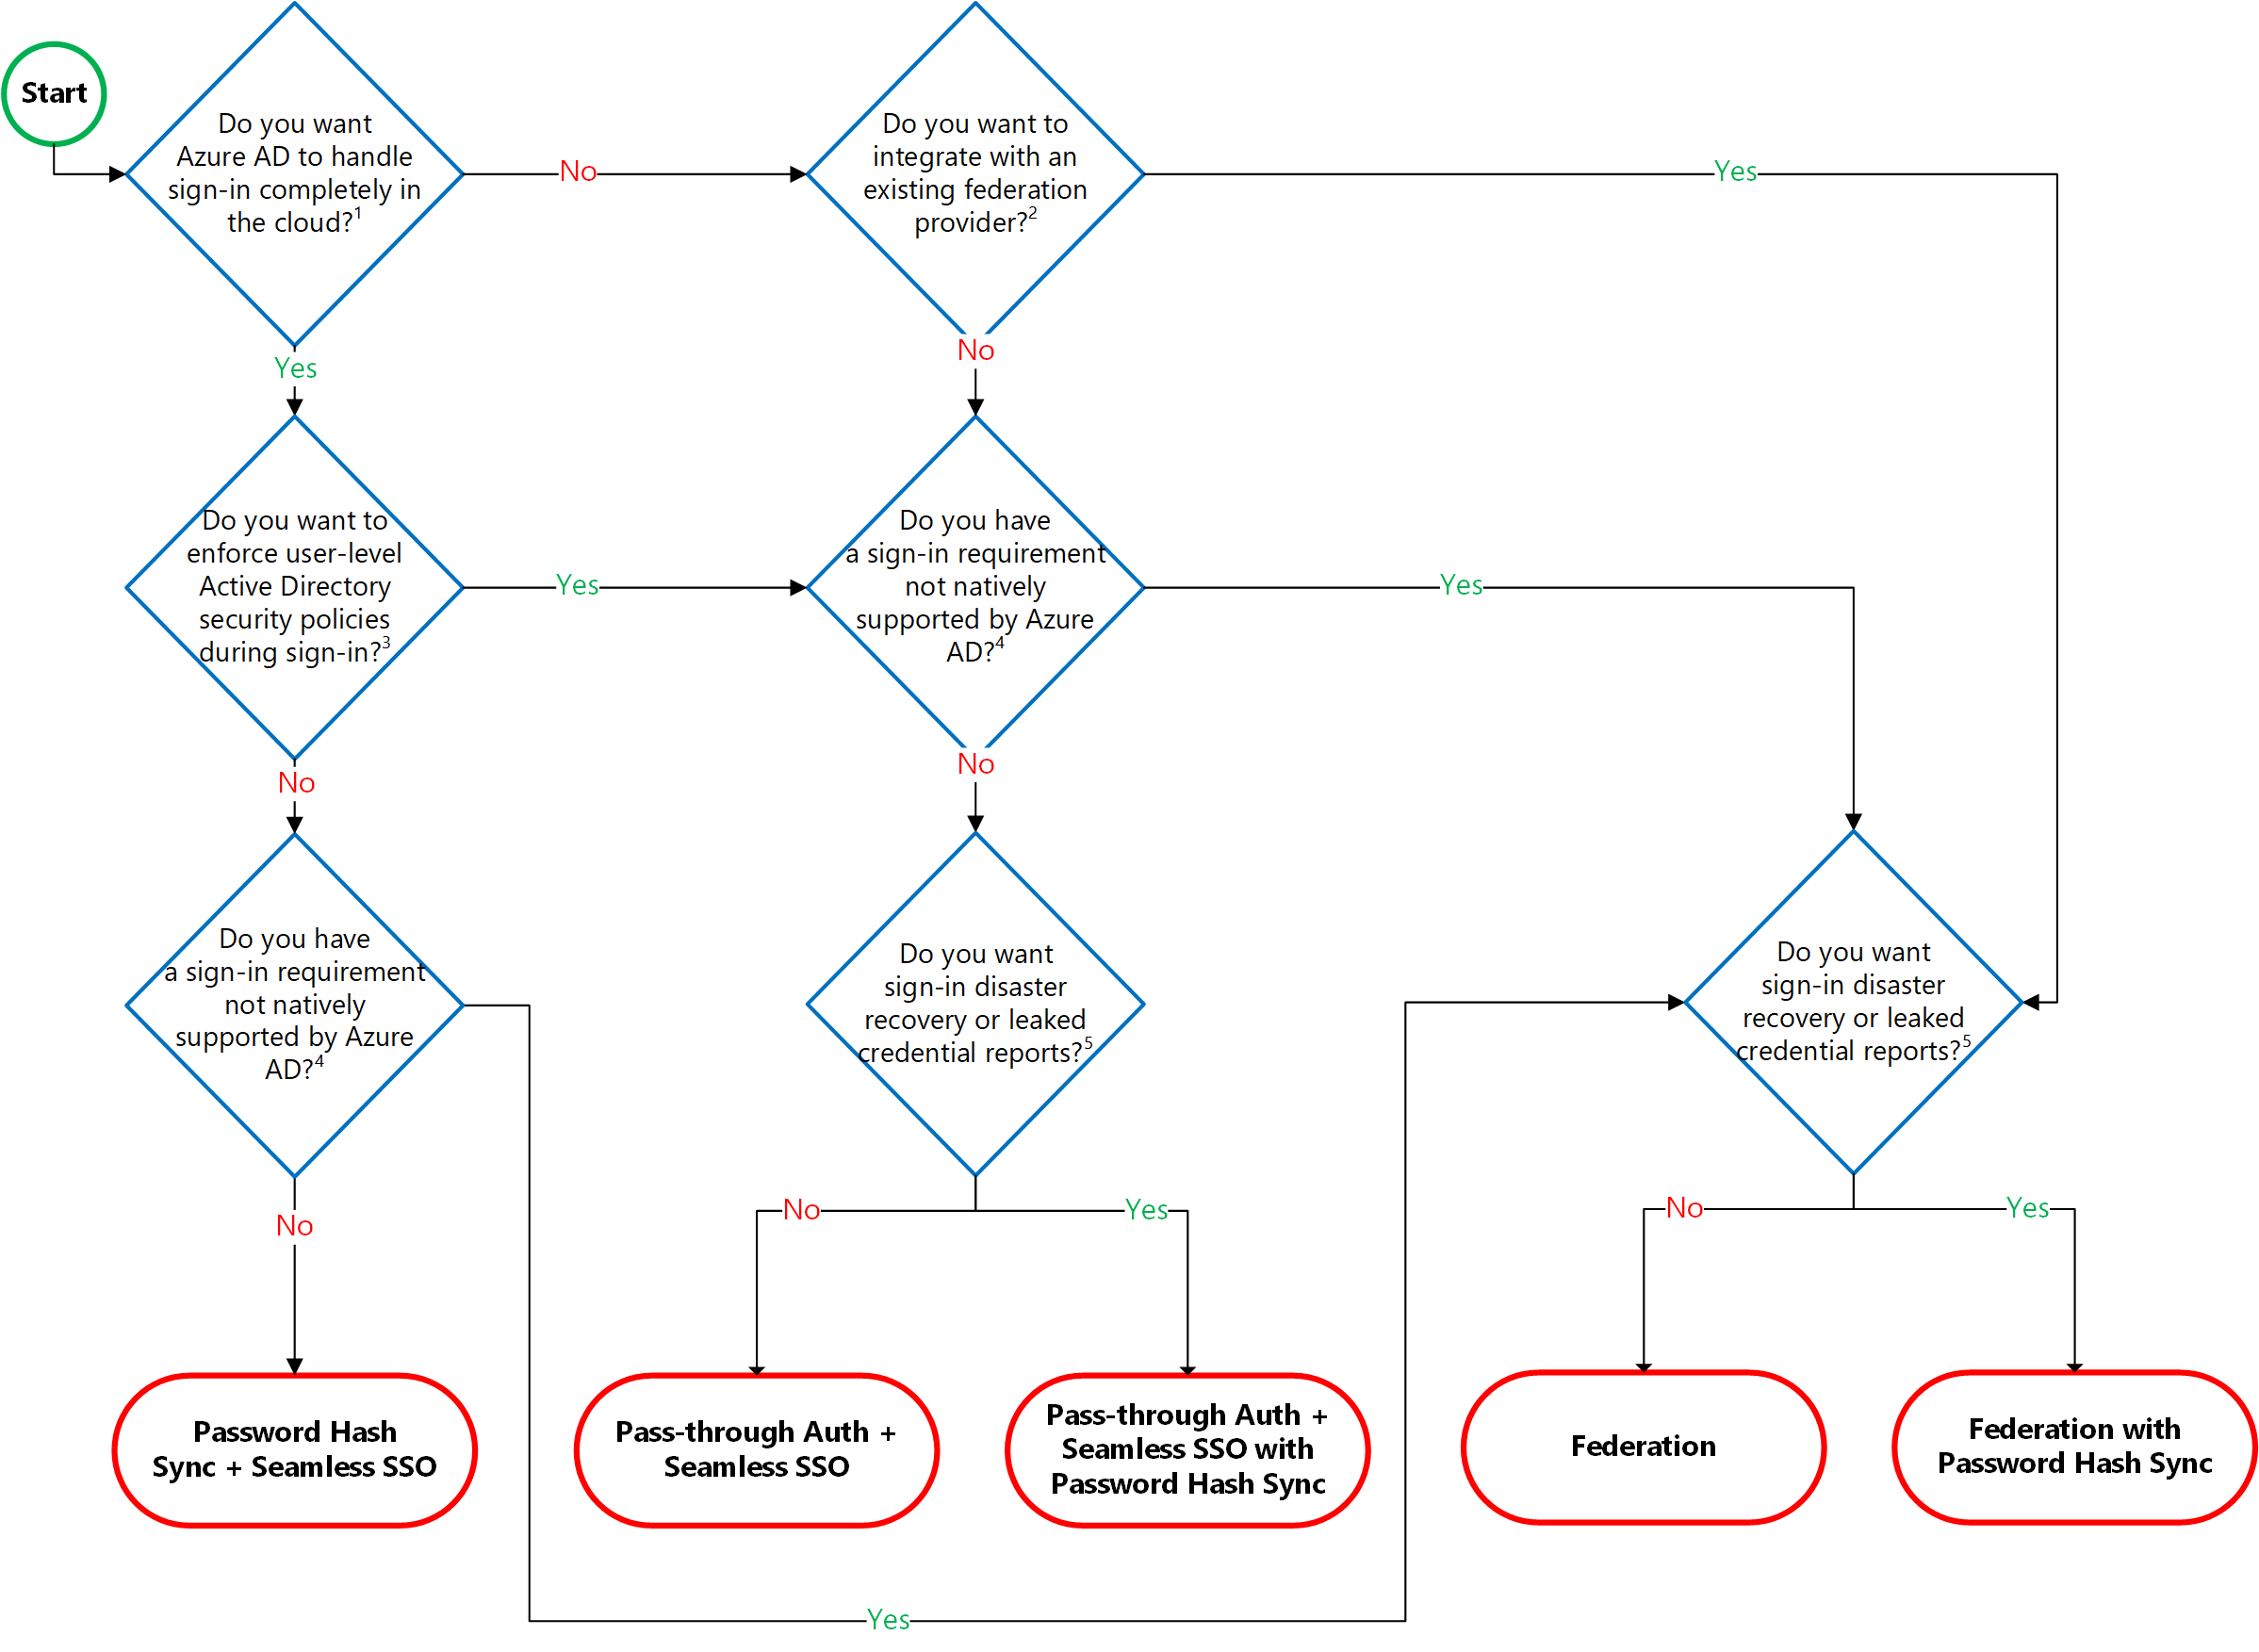 Microsoft's recommended decision flow for determining which AAD authentication option to use